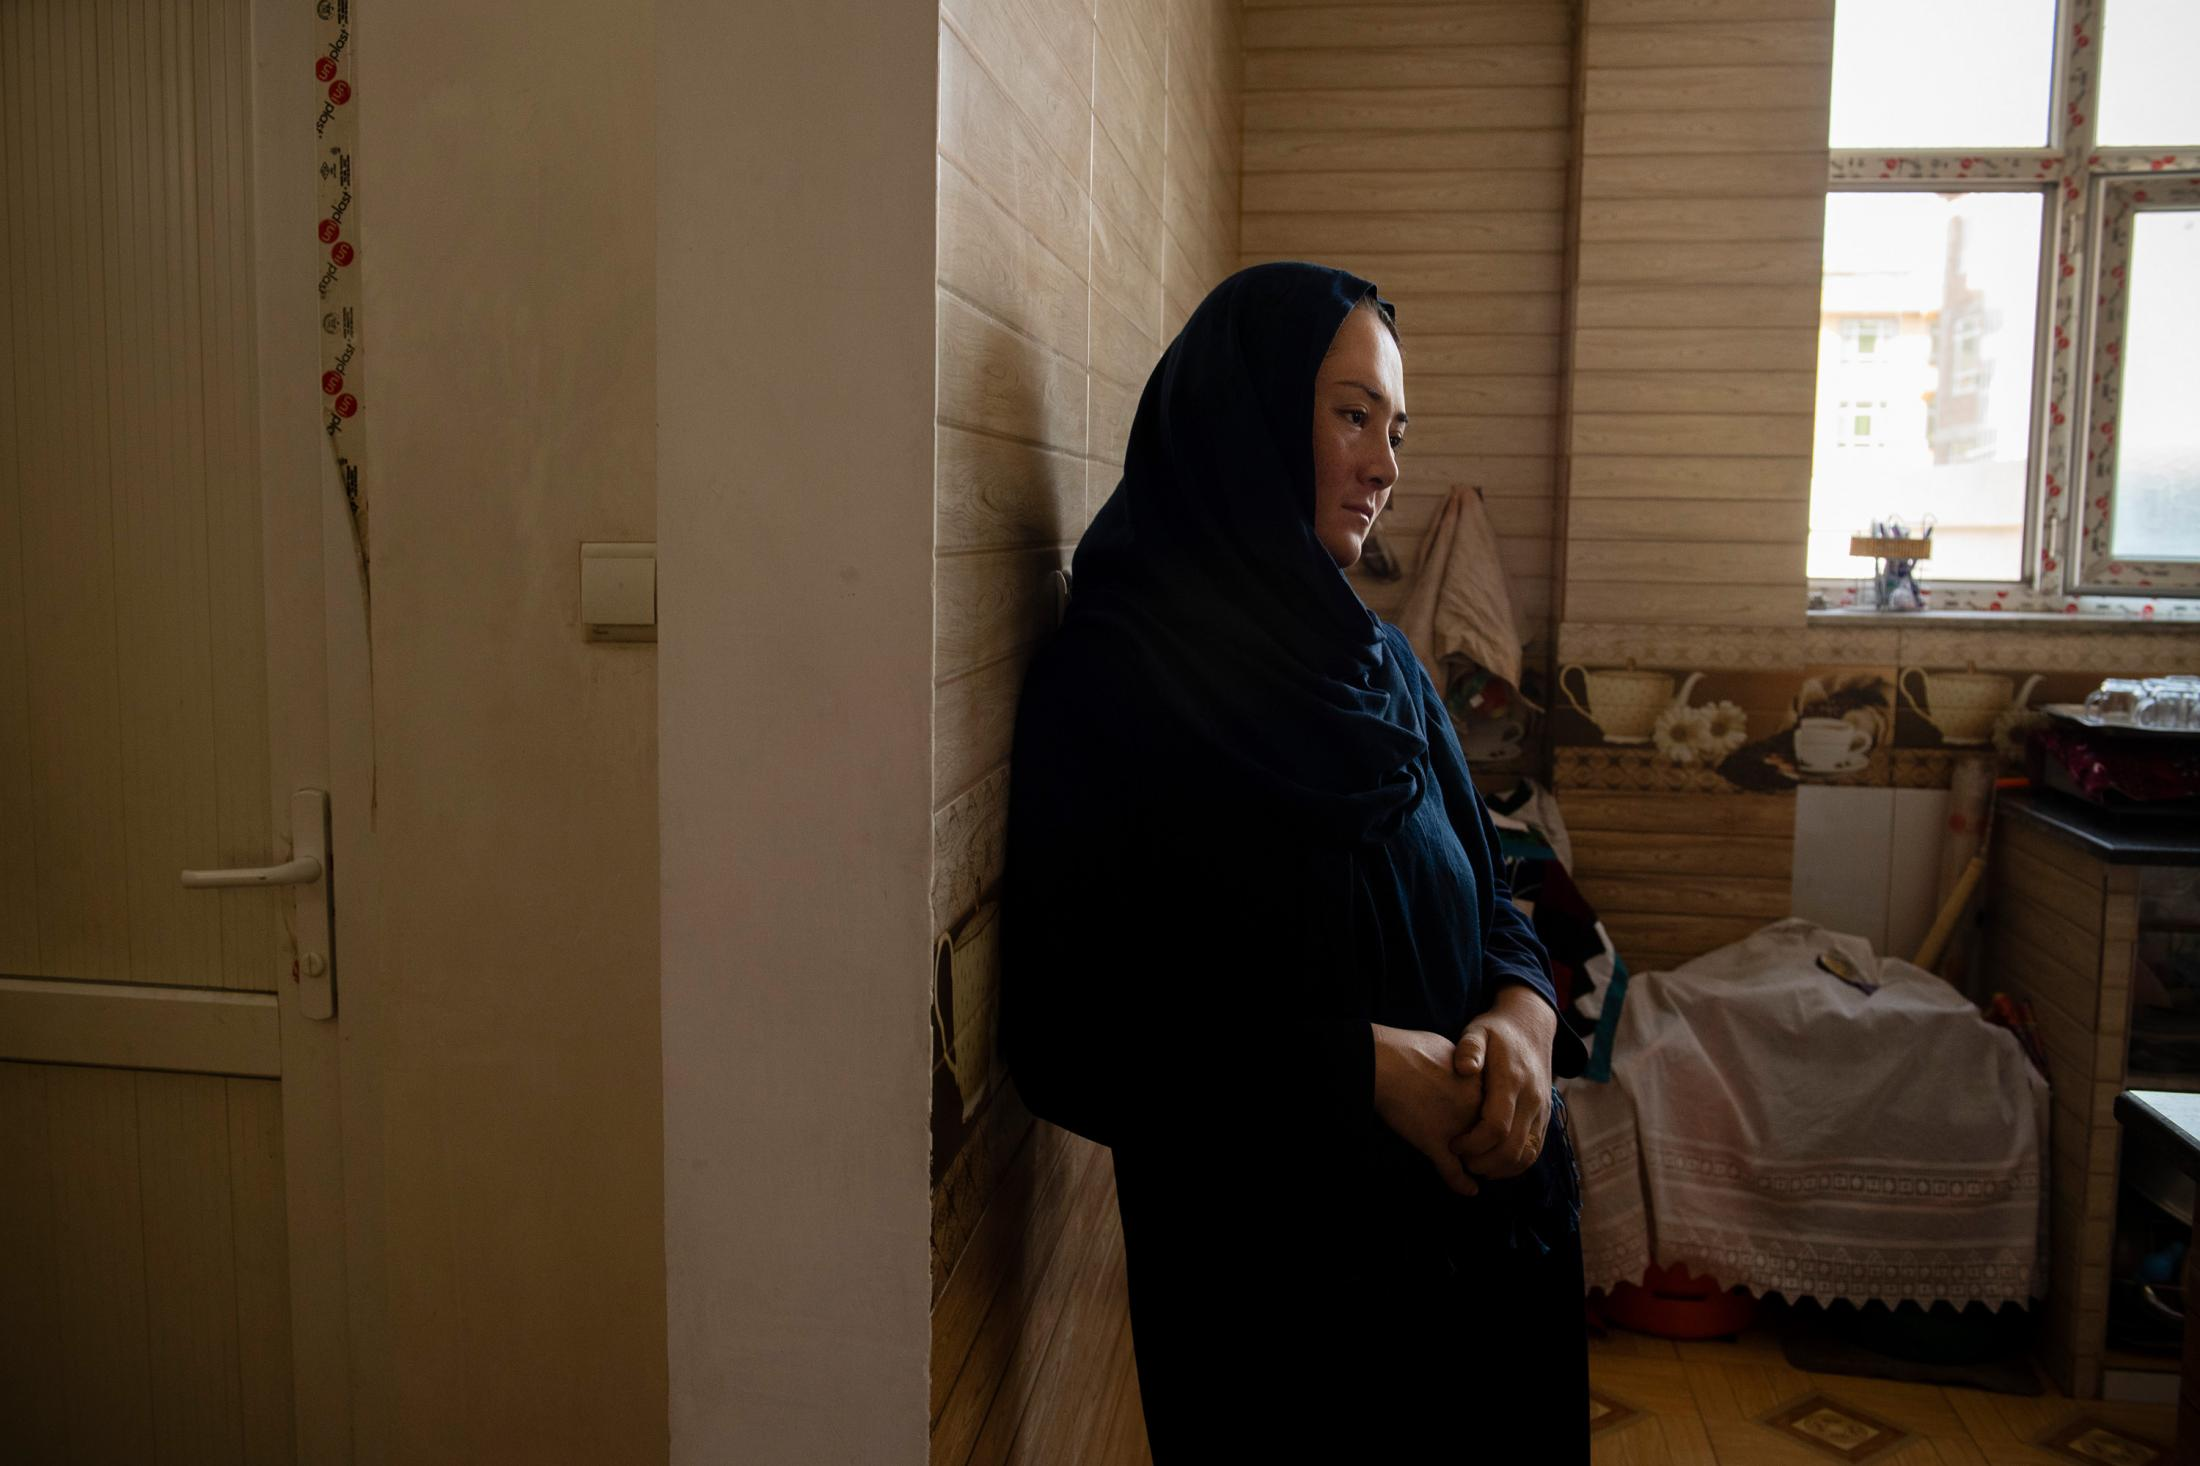 KABUL | AFGHANISTAN | 8/25/18 | Rahila (22) quietly stands by her kitchen, 22 days after she gave birth to her daughter, whom they named Shamsia, after her Father, Shams. On Sofia's 2nd birthday, her father, Shams (37), was killed by Taliban in Ghazni province. At the time, Rahila was 5 months pregnant. Kiana Hayeri for the New York Times